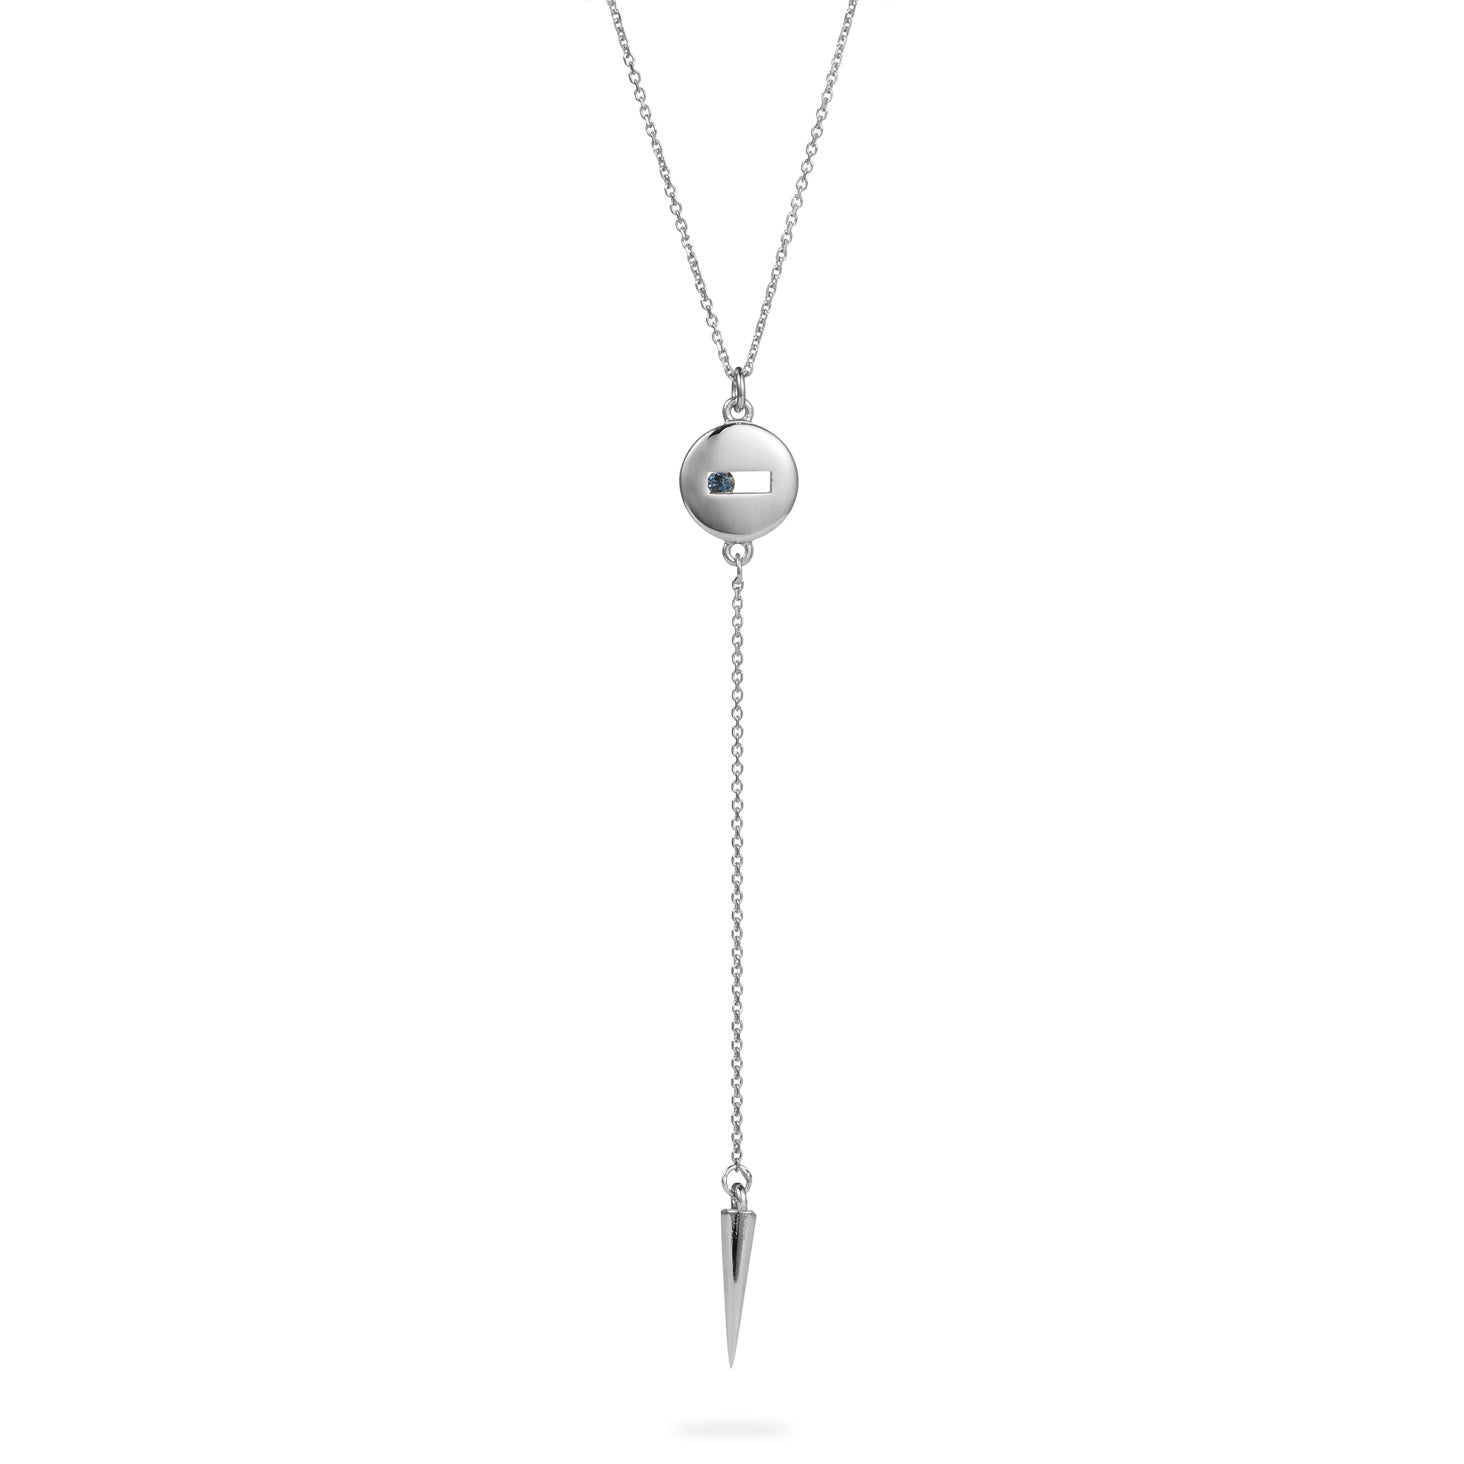 Luke Rose Jewellery silver blue sapphire drop necklace